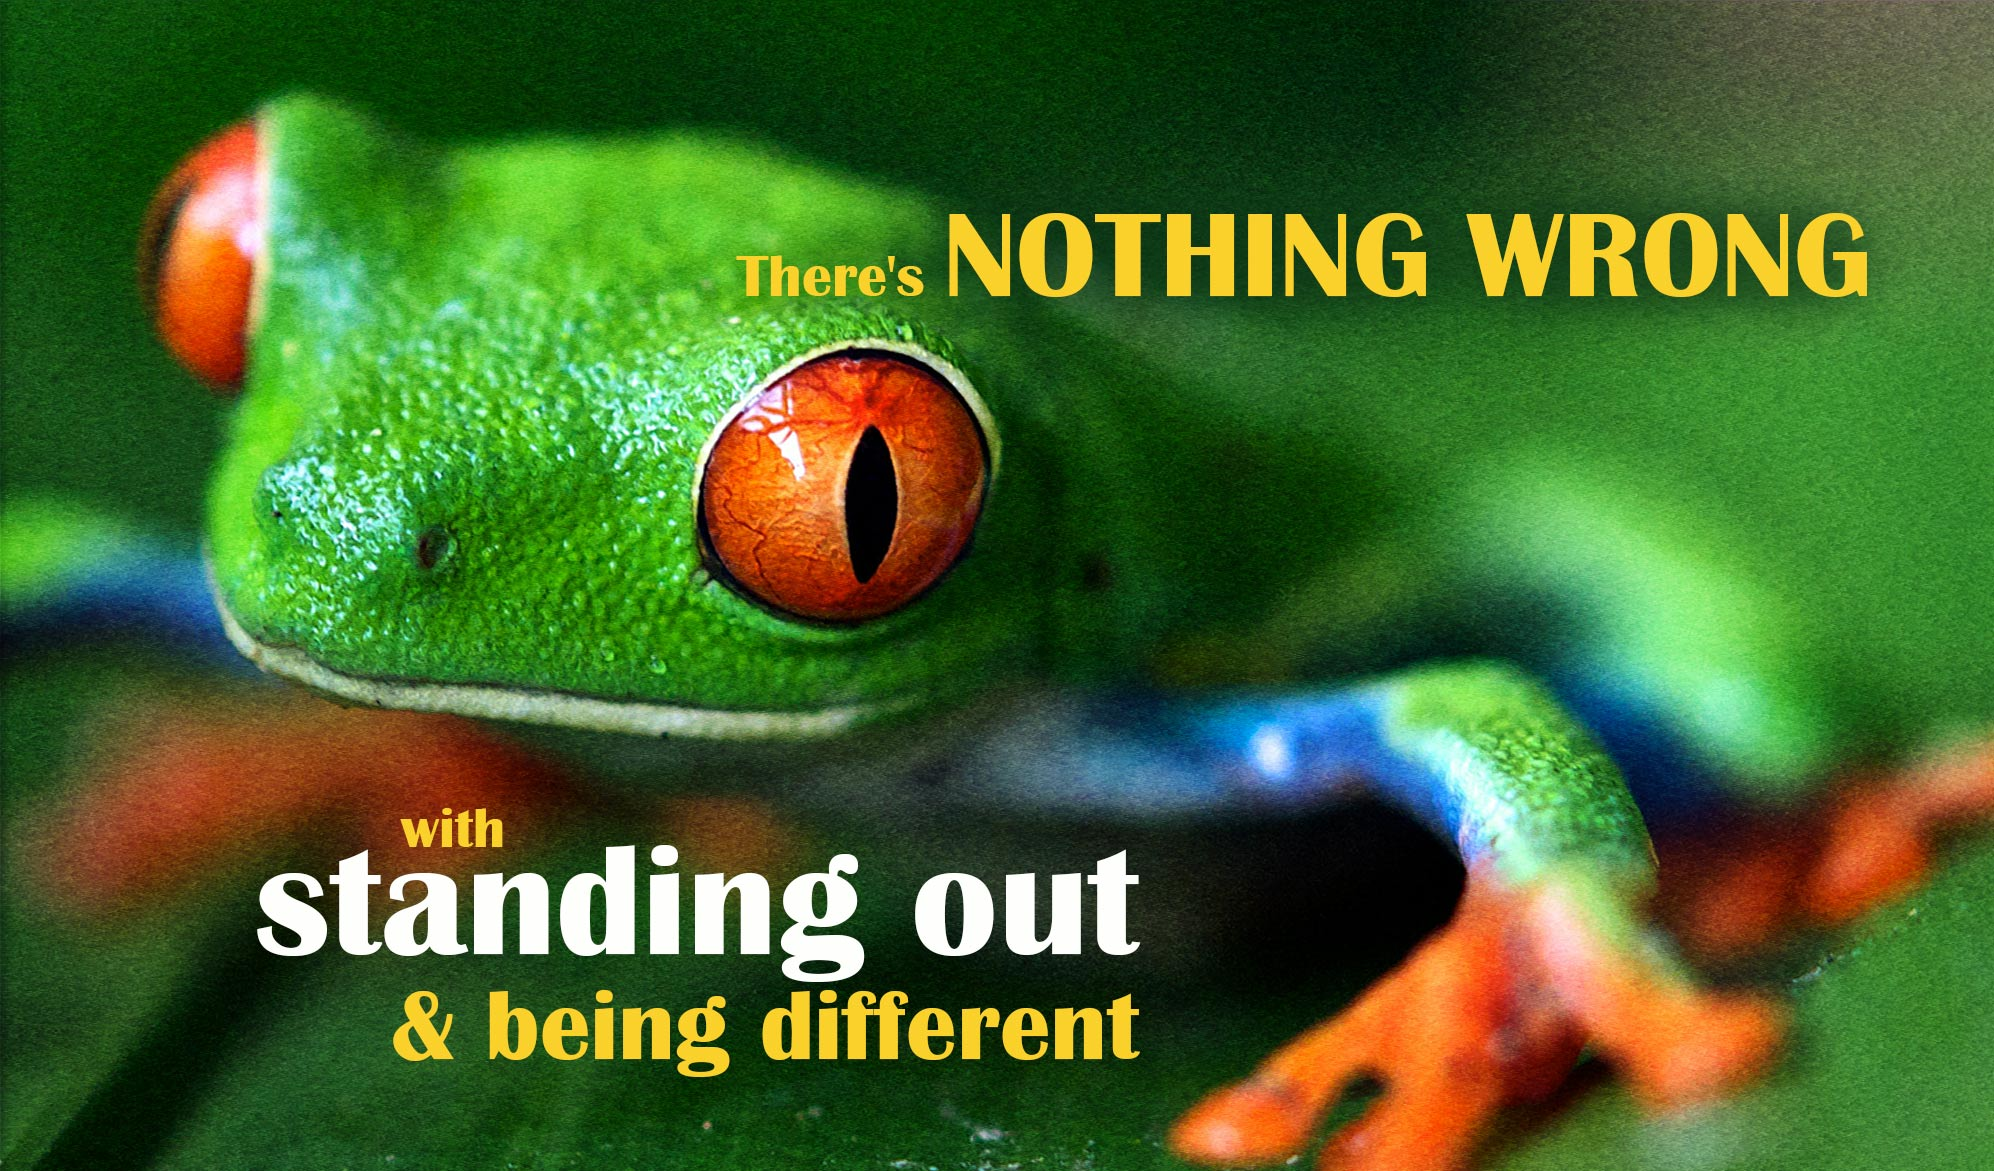 daily inspirational quote image: tropical frog with red eyes on a leaf